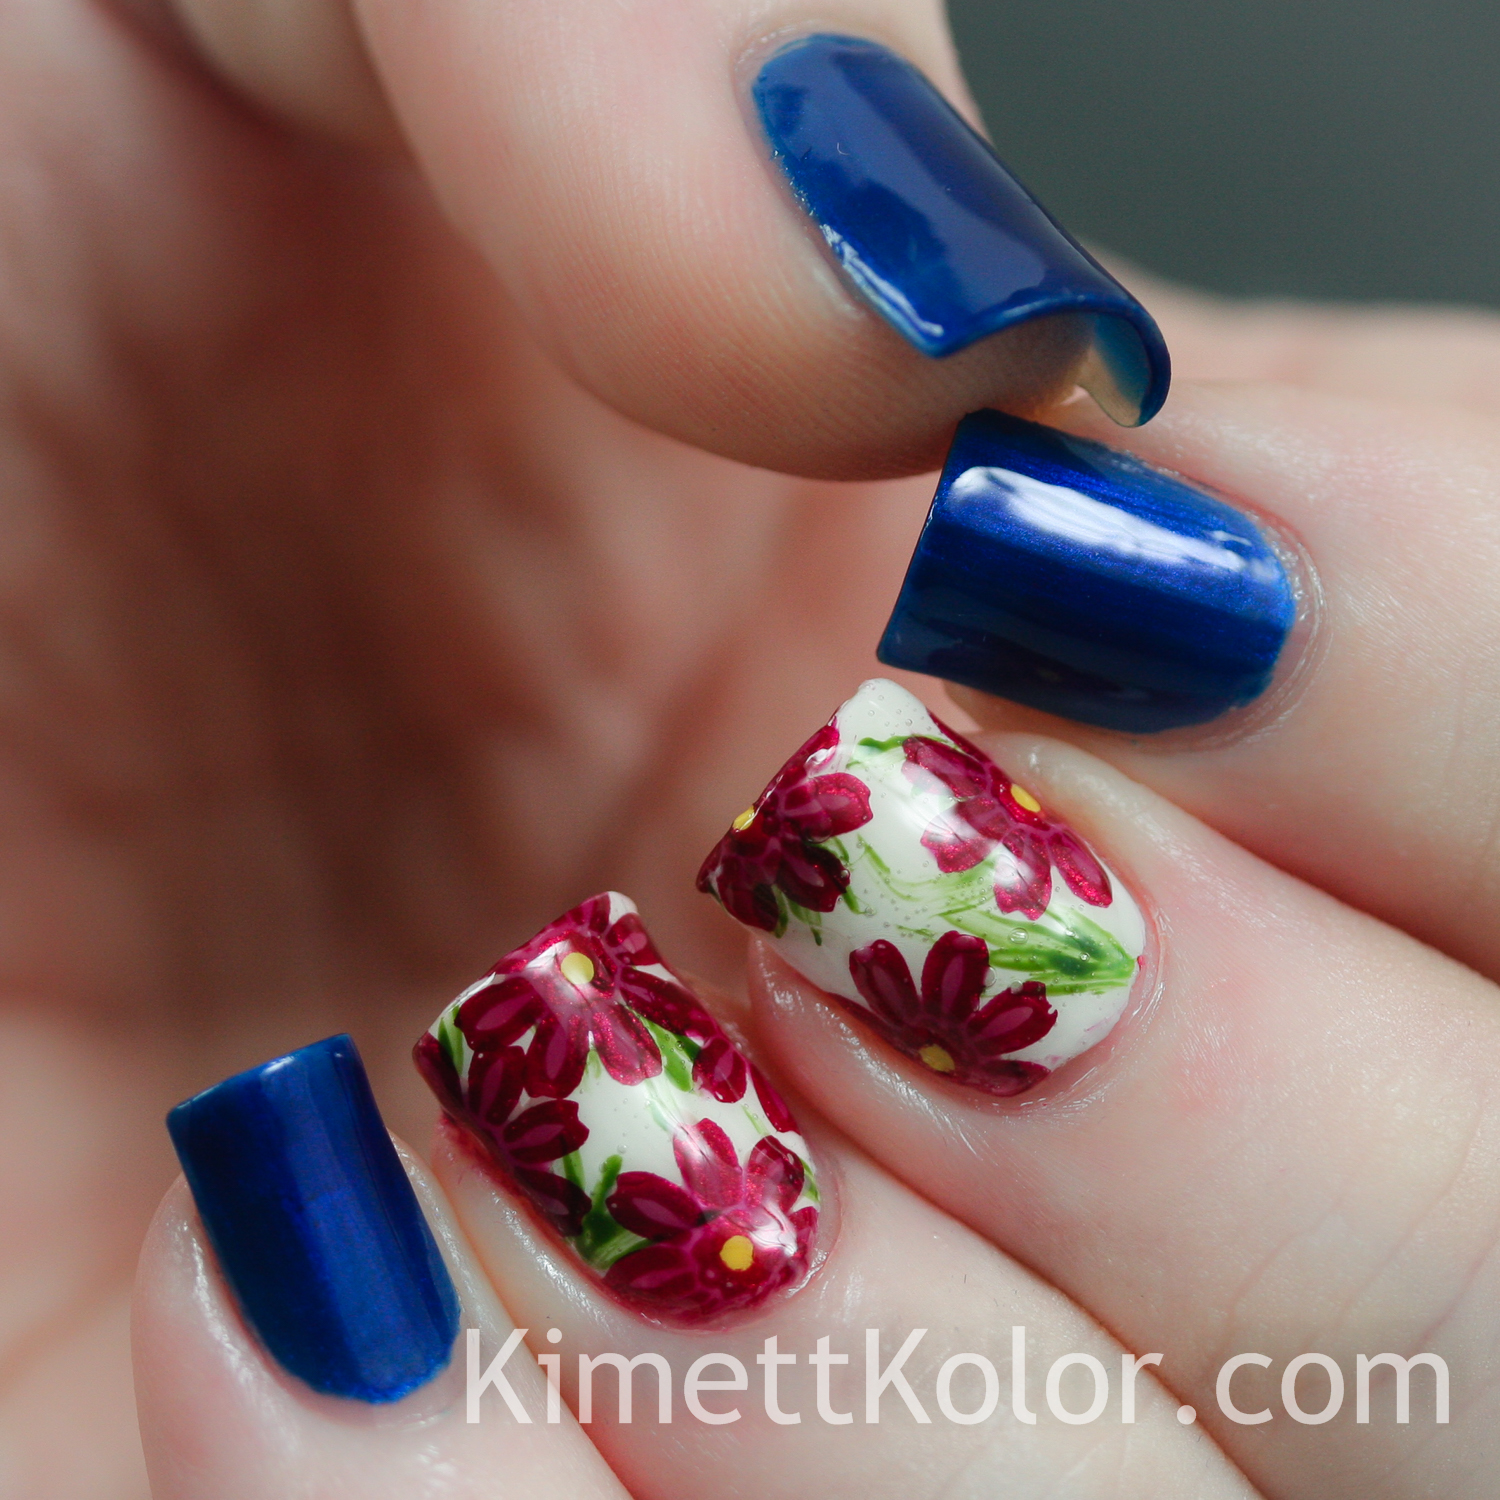 Theme of the Month: September Sapphire and Asters